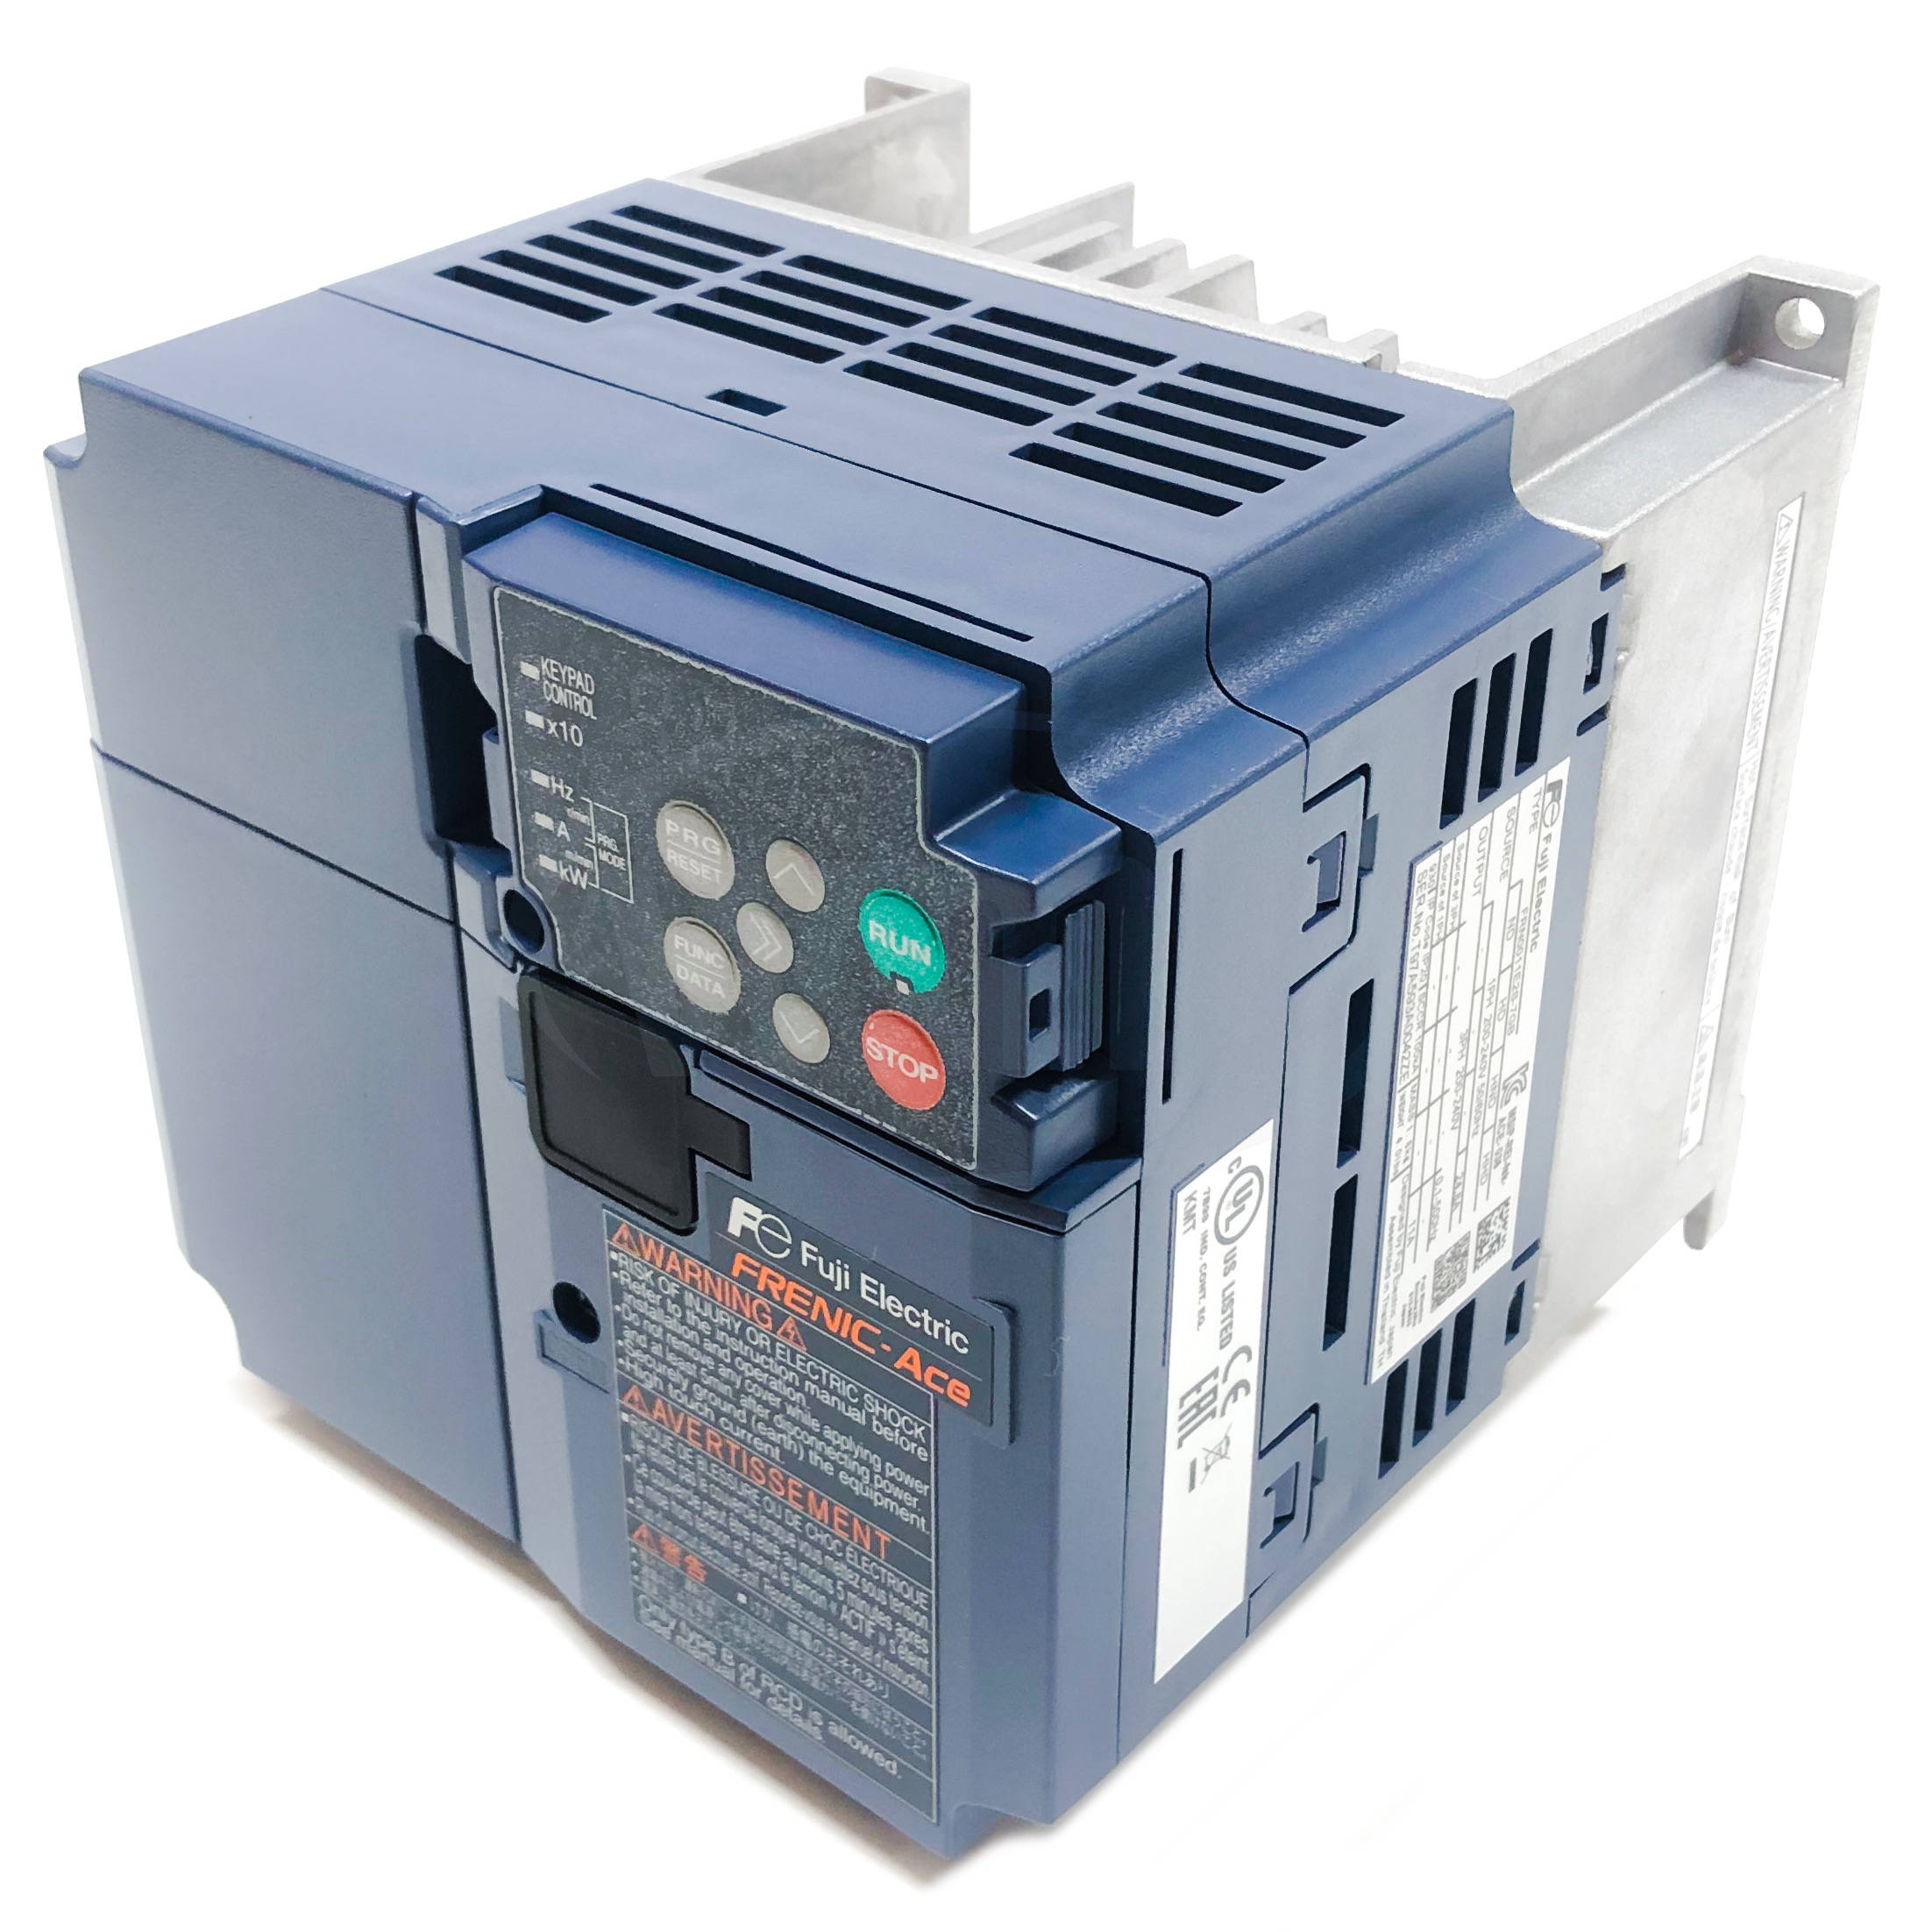 FRN0011E2S-7GB 3 HP Fuji FRENIC-ACE Variable Frequency Drive (VFD)